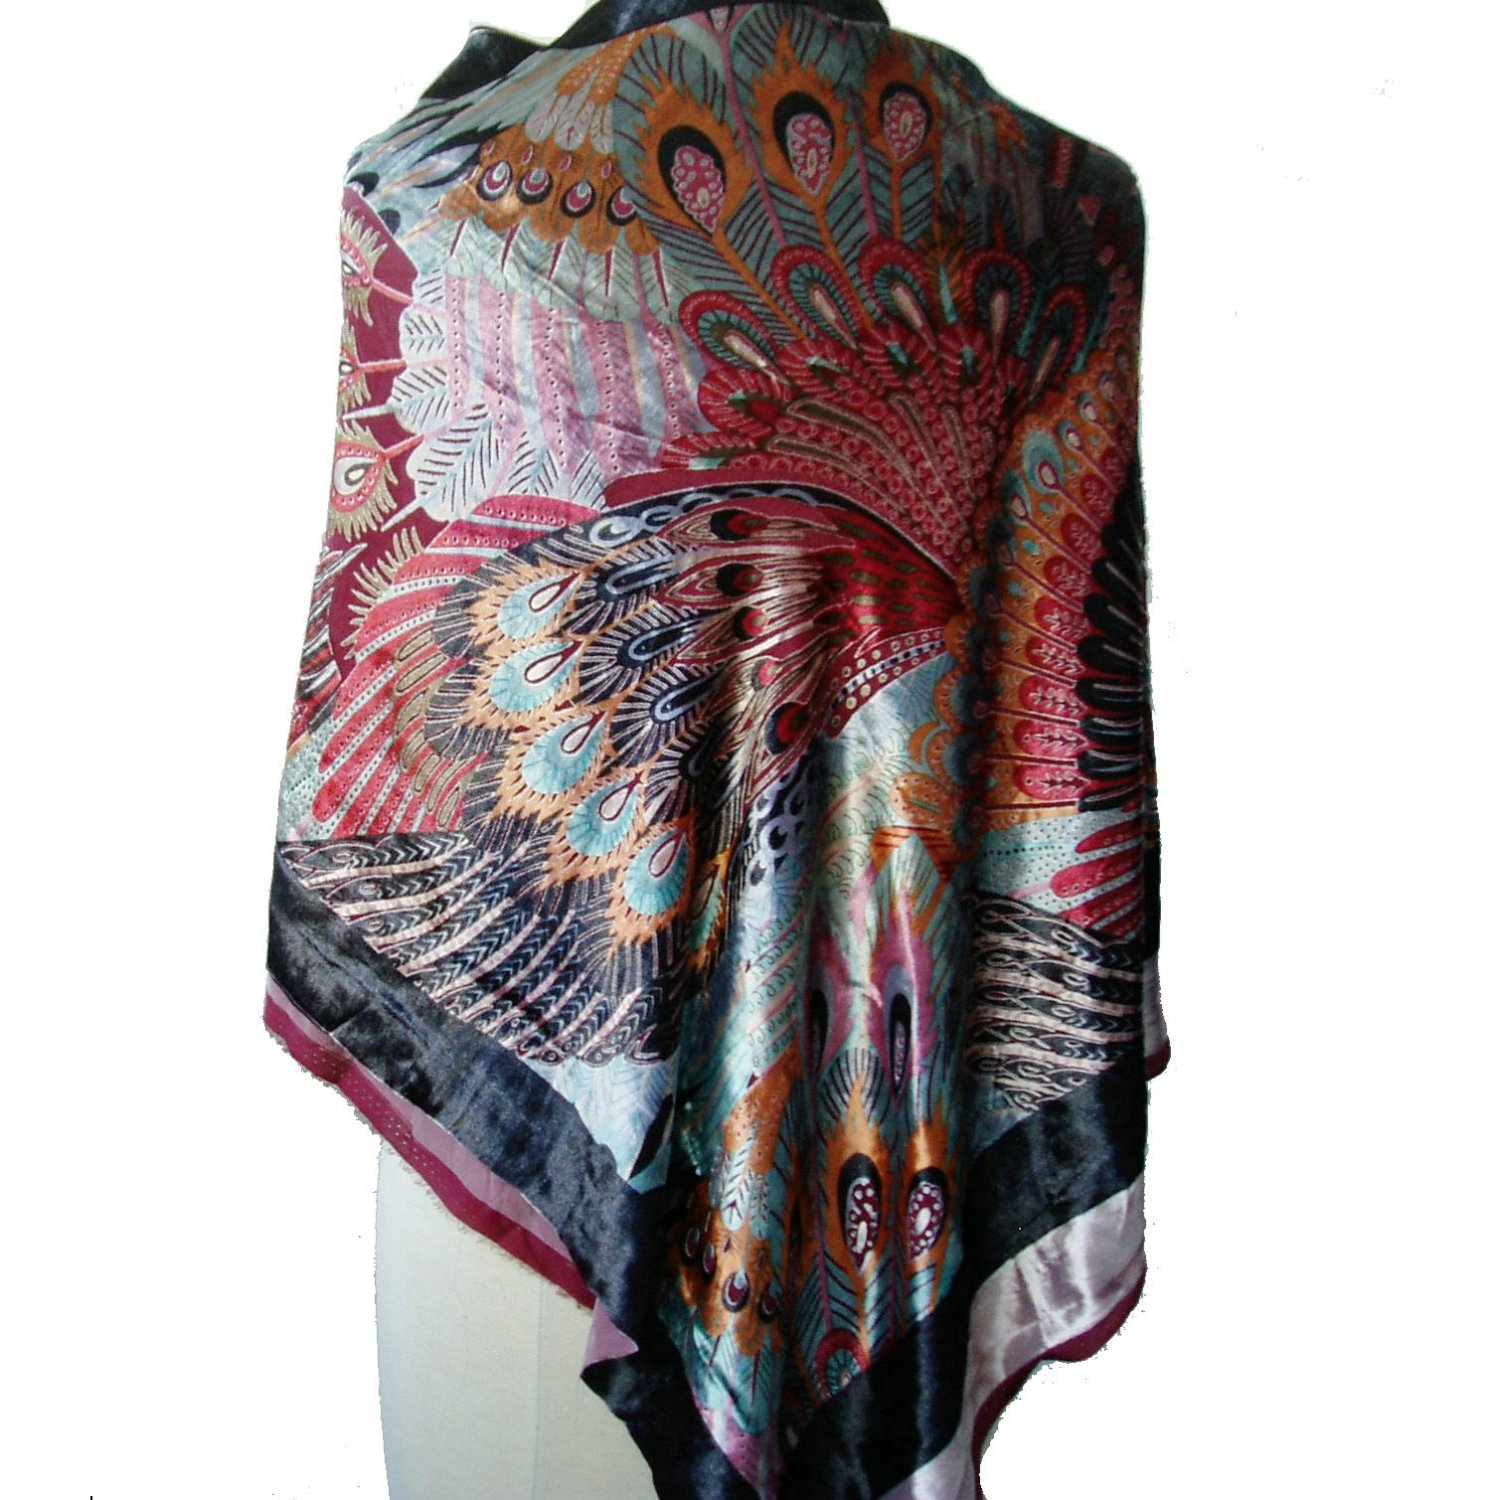 silk velvet burnout fabric for scarf shawls sewing 112X 105cm